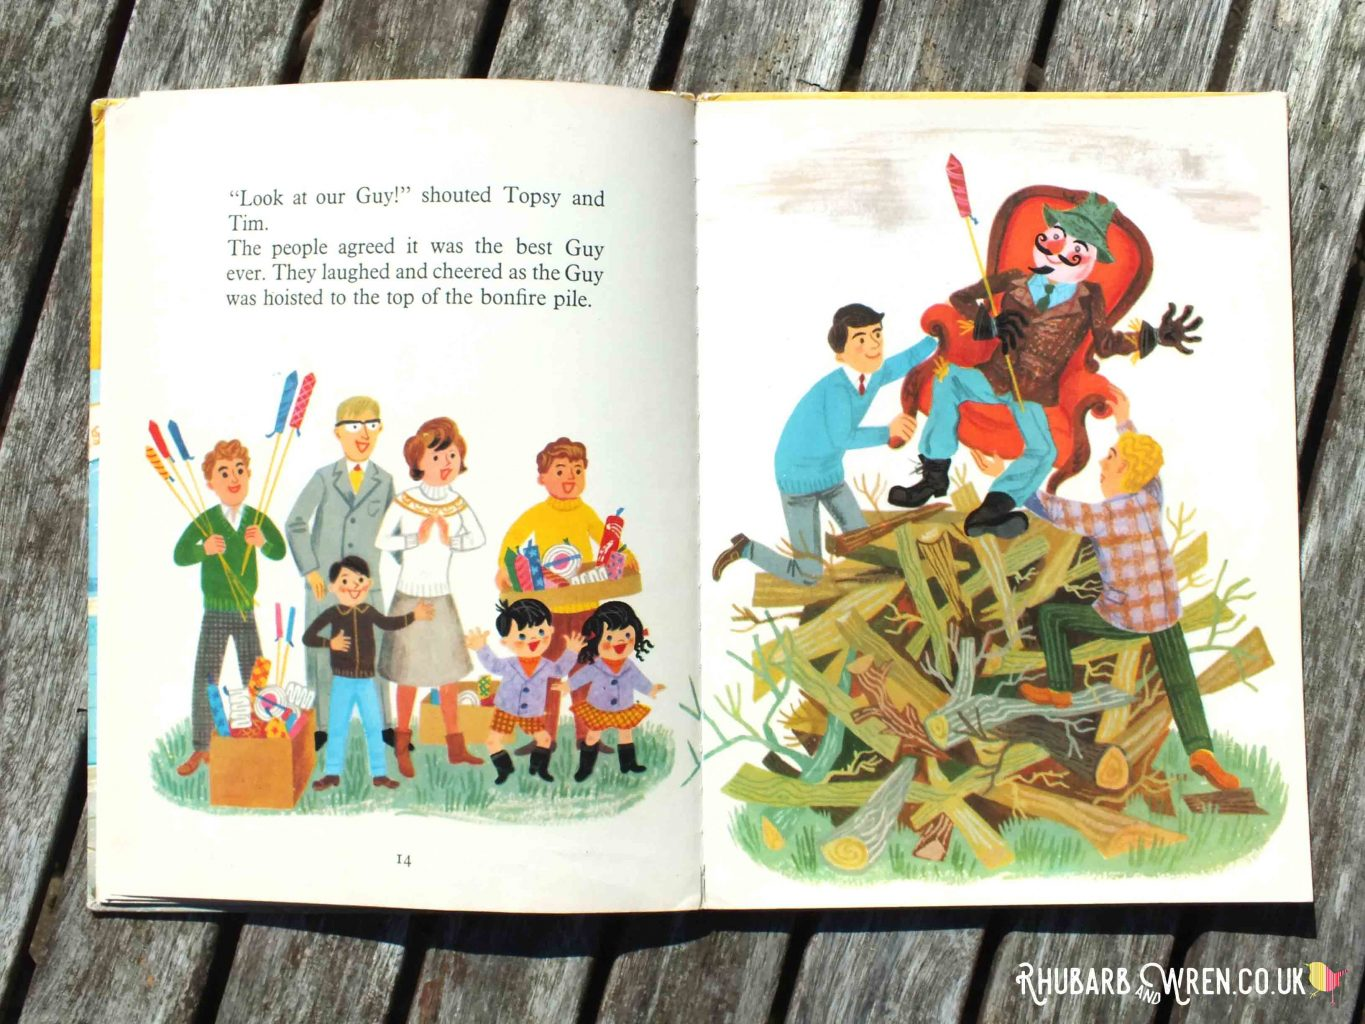 Illustration of a Guy holding fireworks being placed on bonfire in Topsy and Tim's Bonfire Night